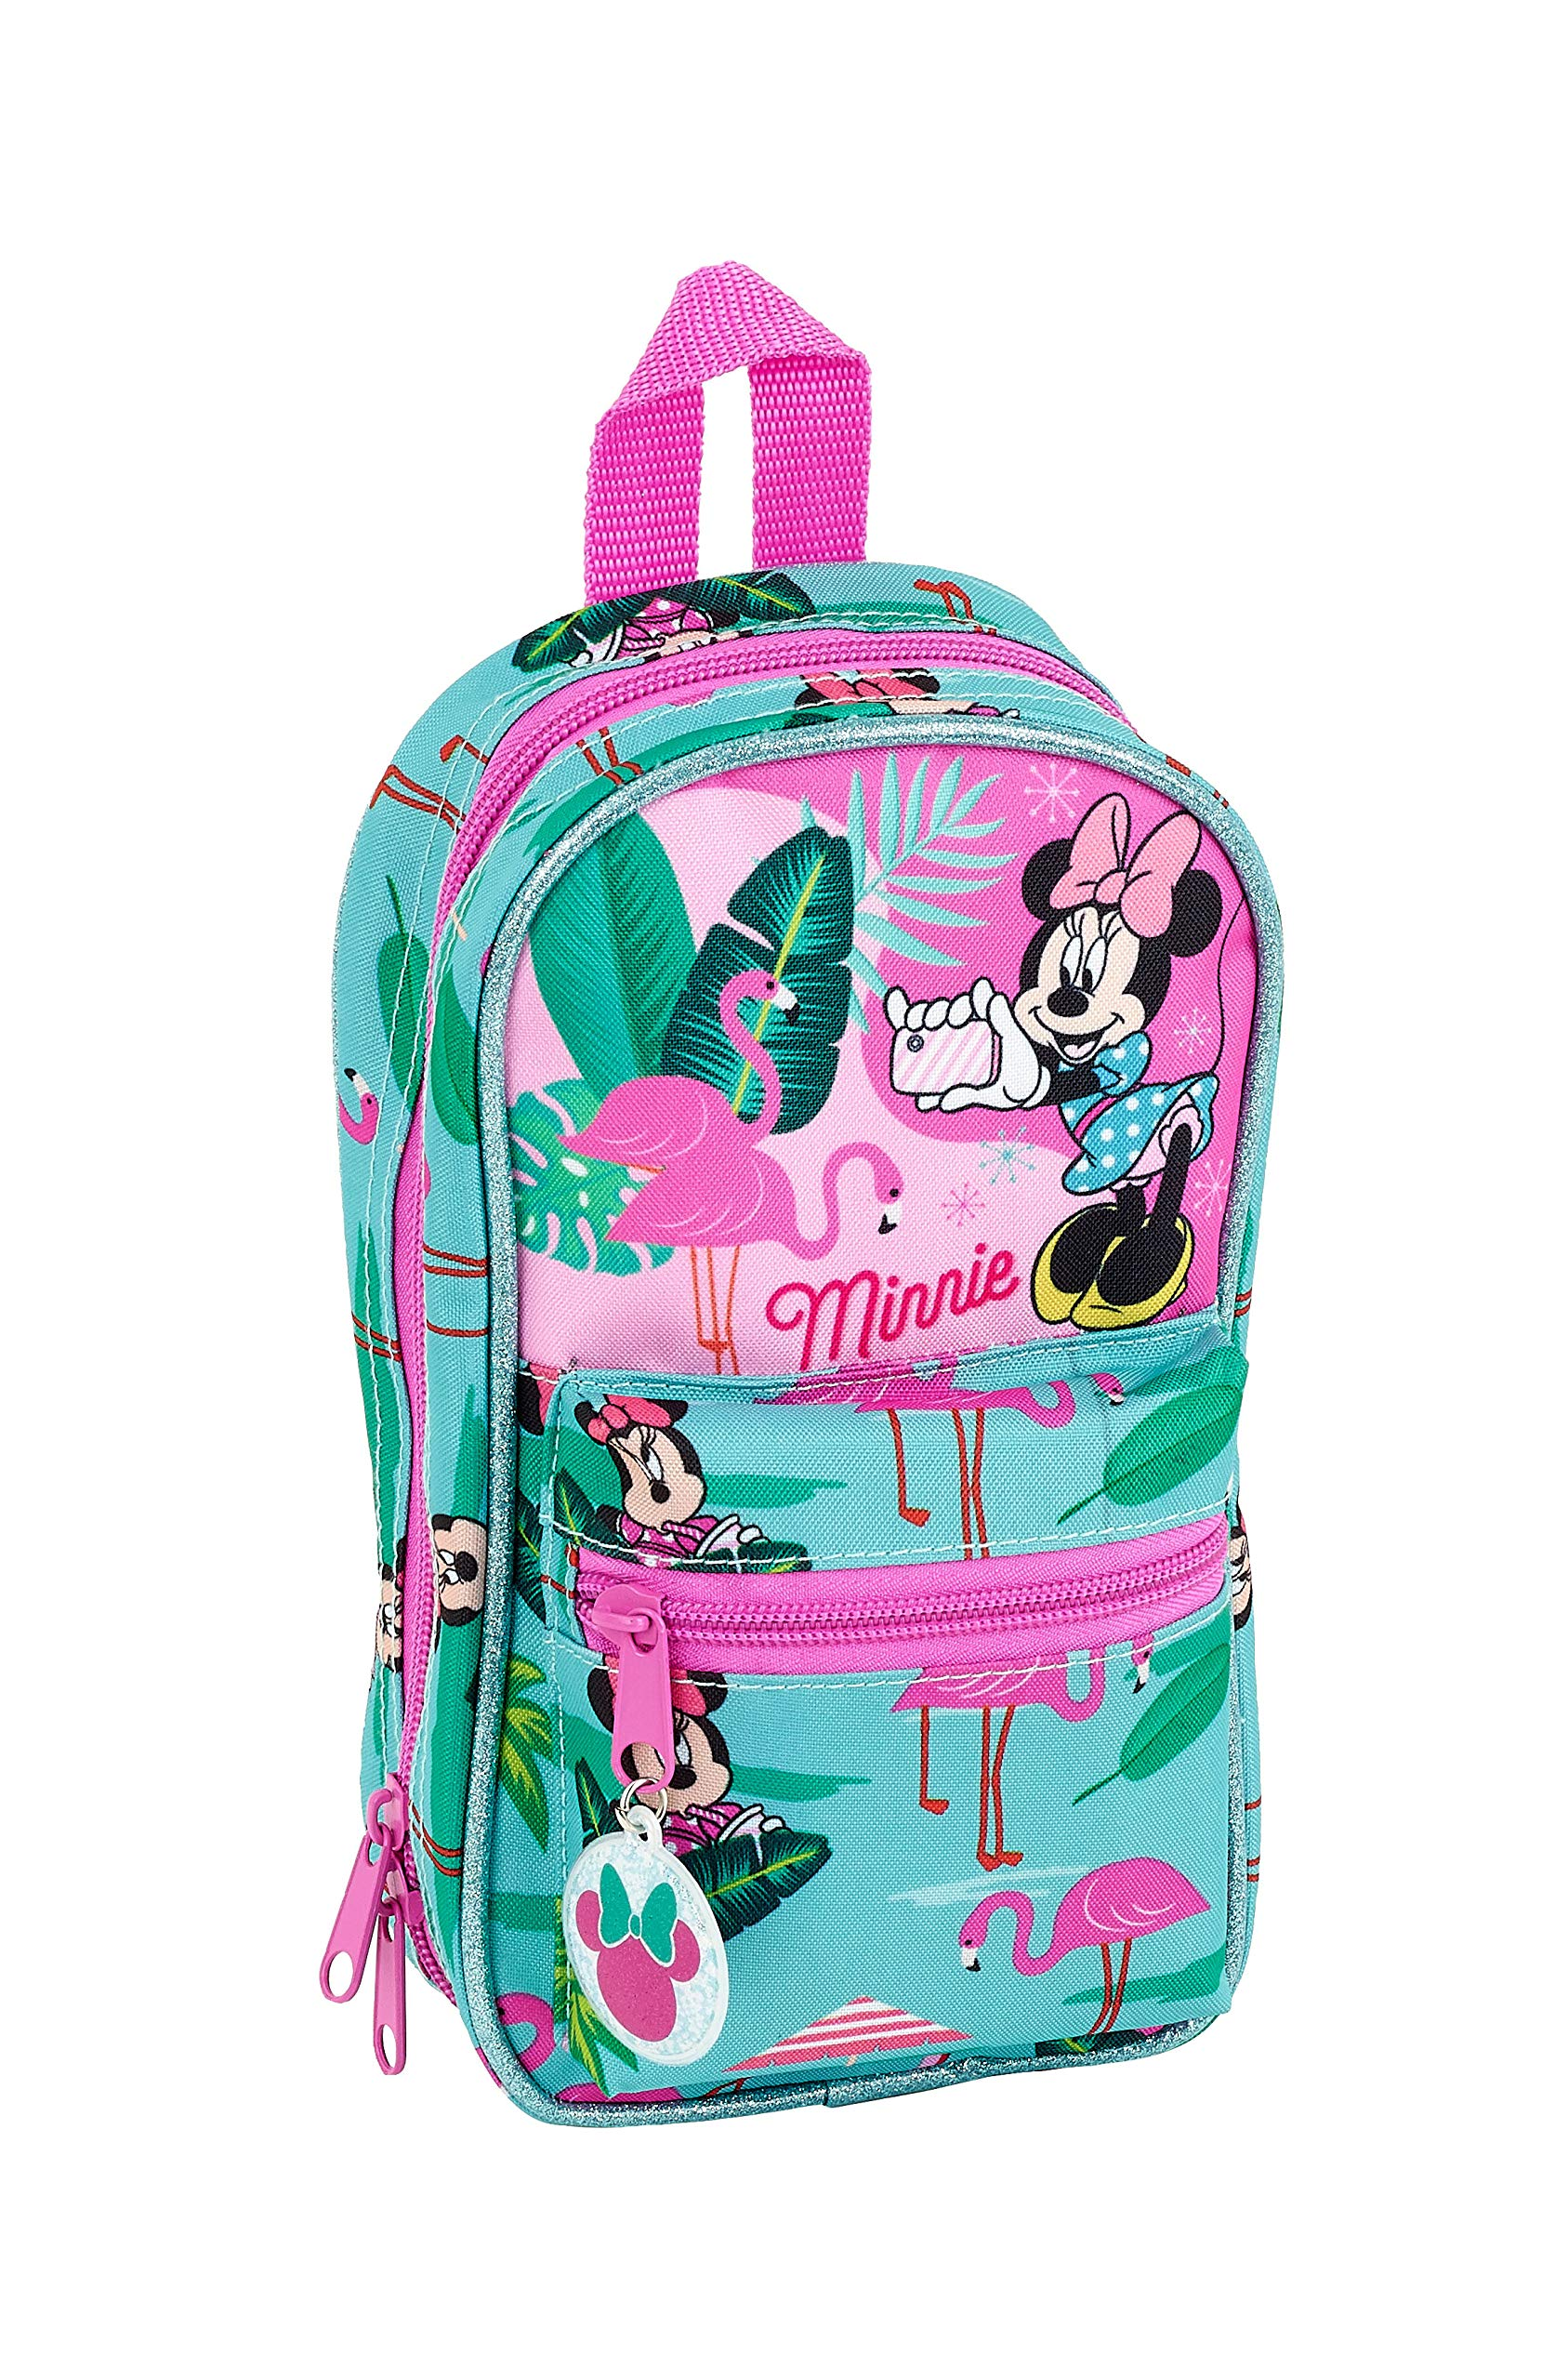 Minnie Mouse «Palms» Oficial Neceser Con 4 Estuches y útiles 120x50x230mm